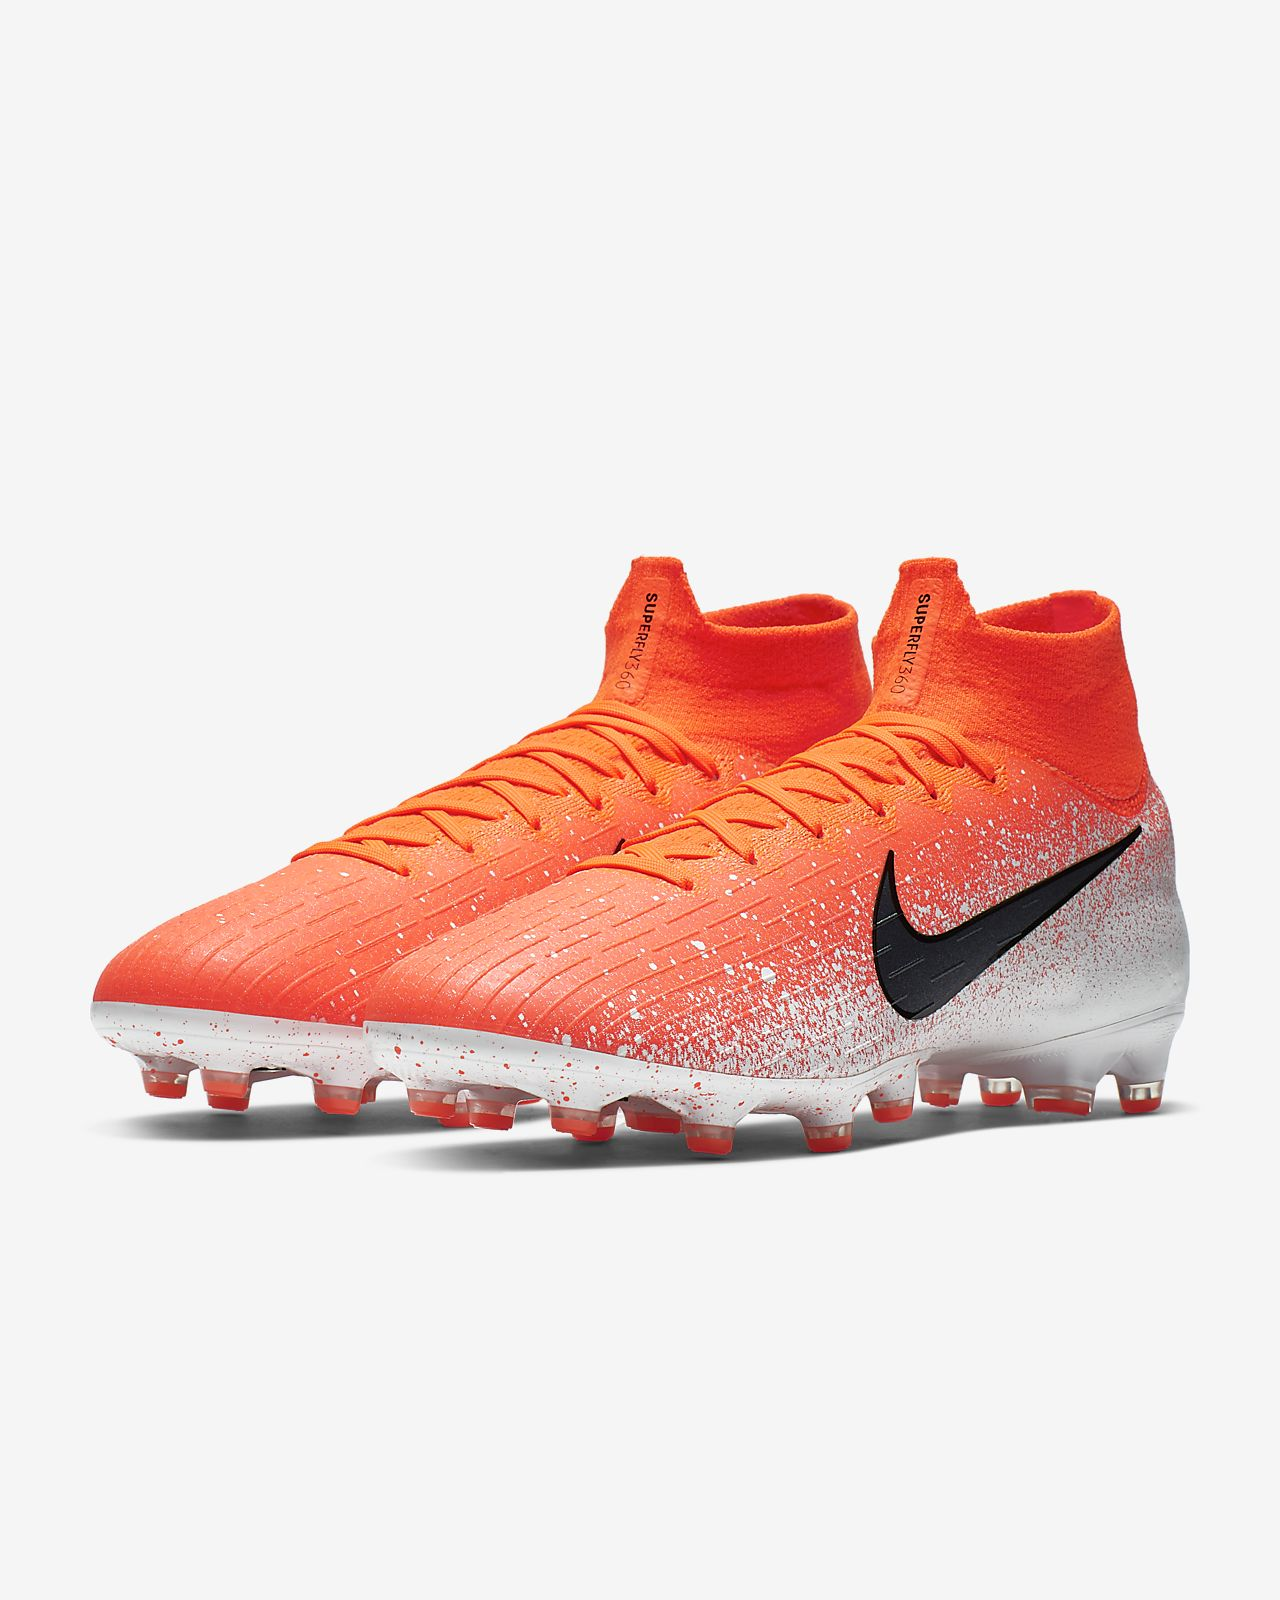 new product 8bbf6 aaad2 Nike Mercurial Superfly 360 Elite AG-PRO Artificial-Grass Football Boot